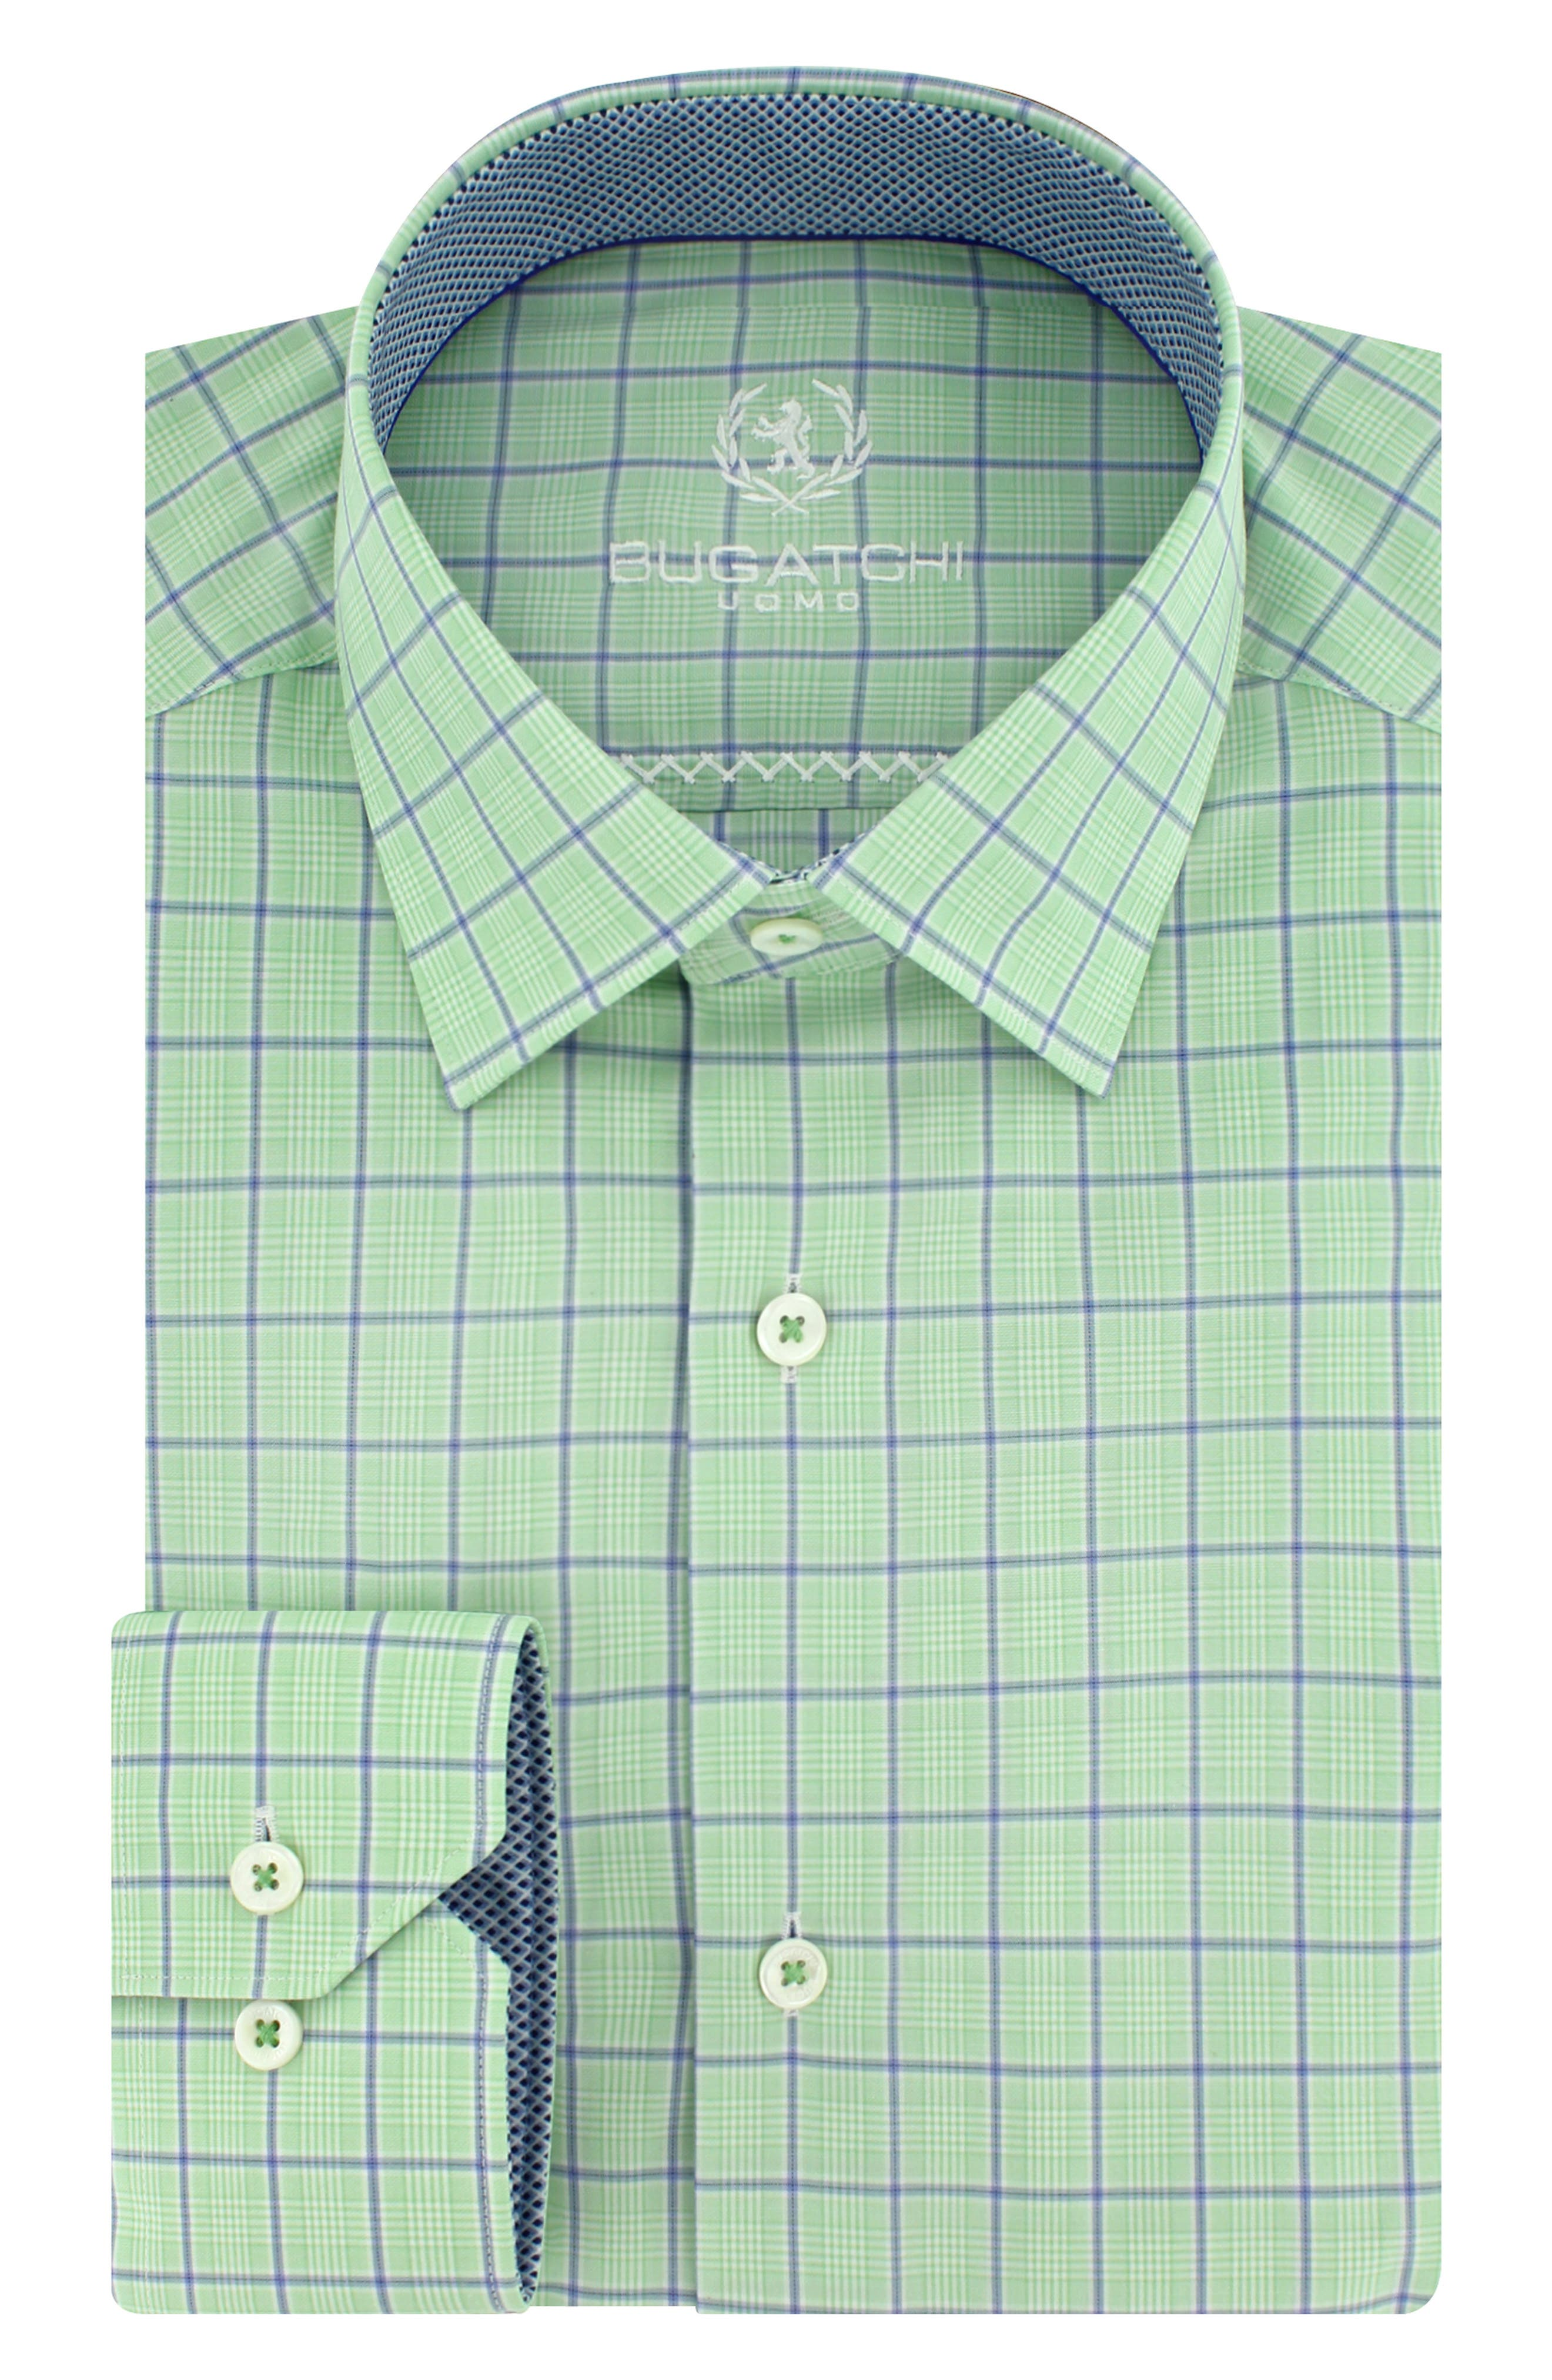 Trim Fit Plaid Dress Shirt,                             Main thumbnail 1, color,                             329